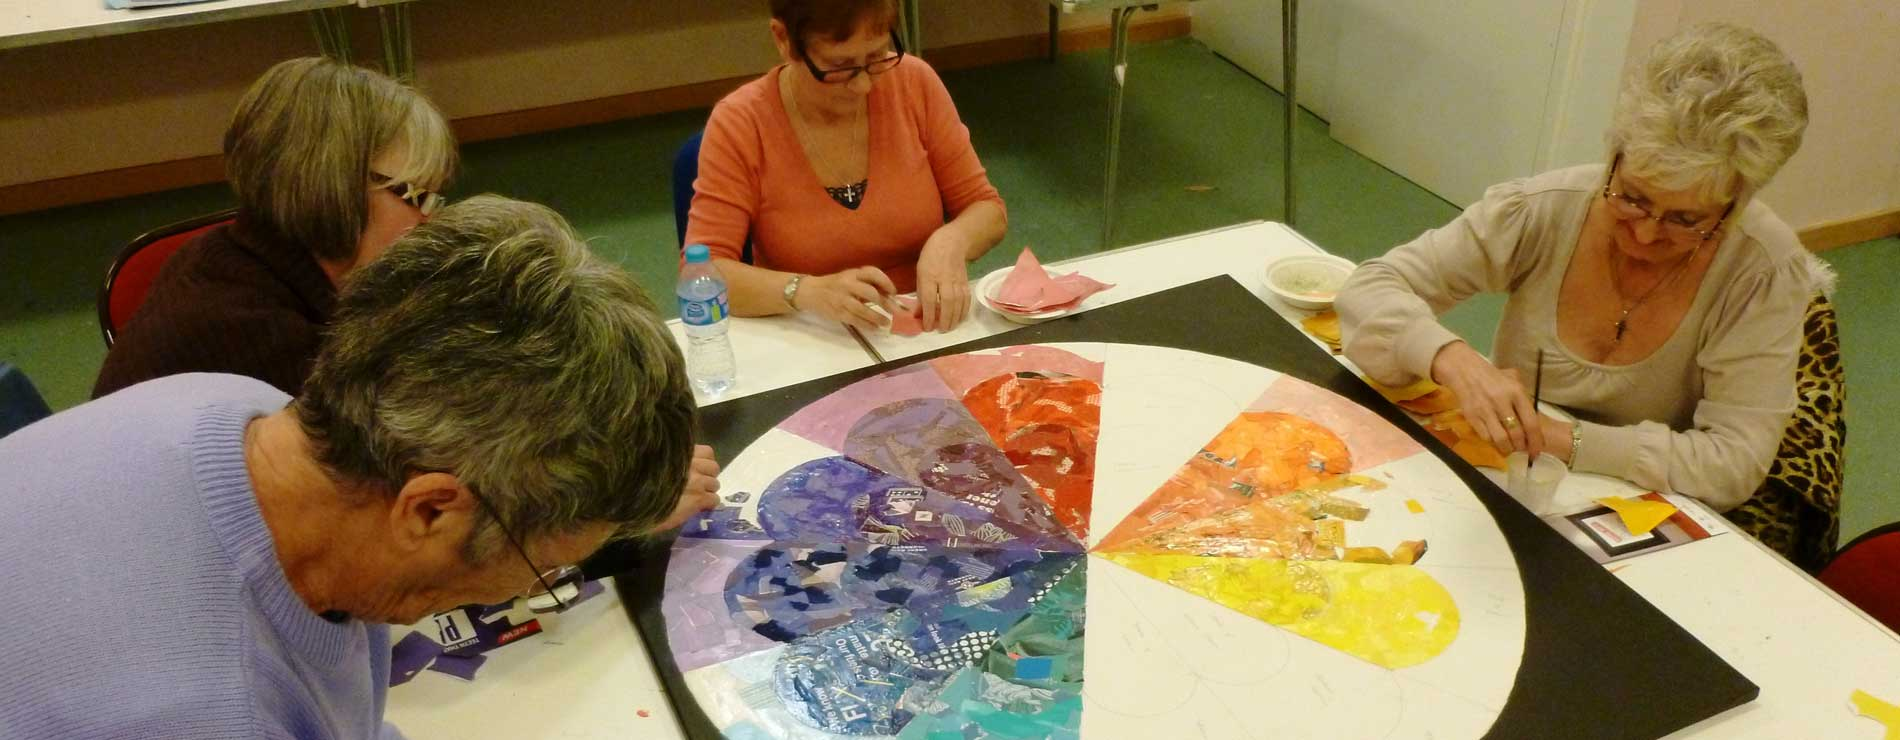 Arts for health and well-being